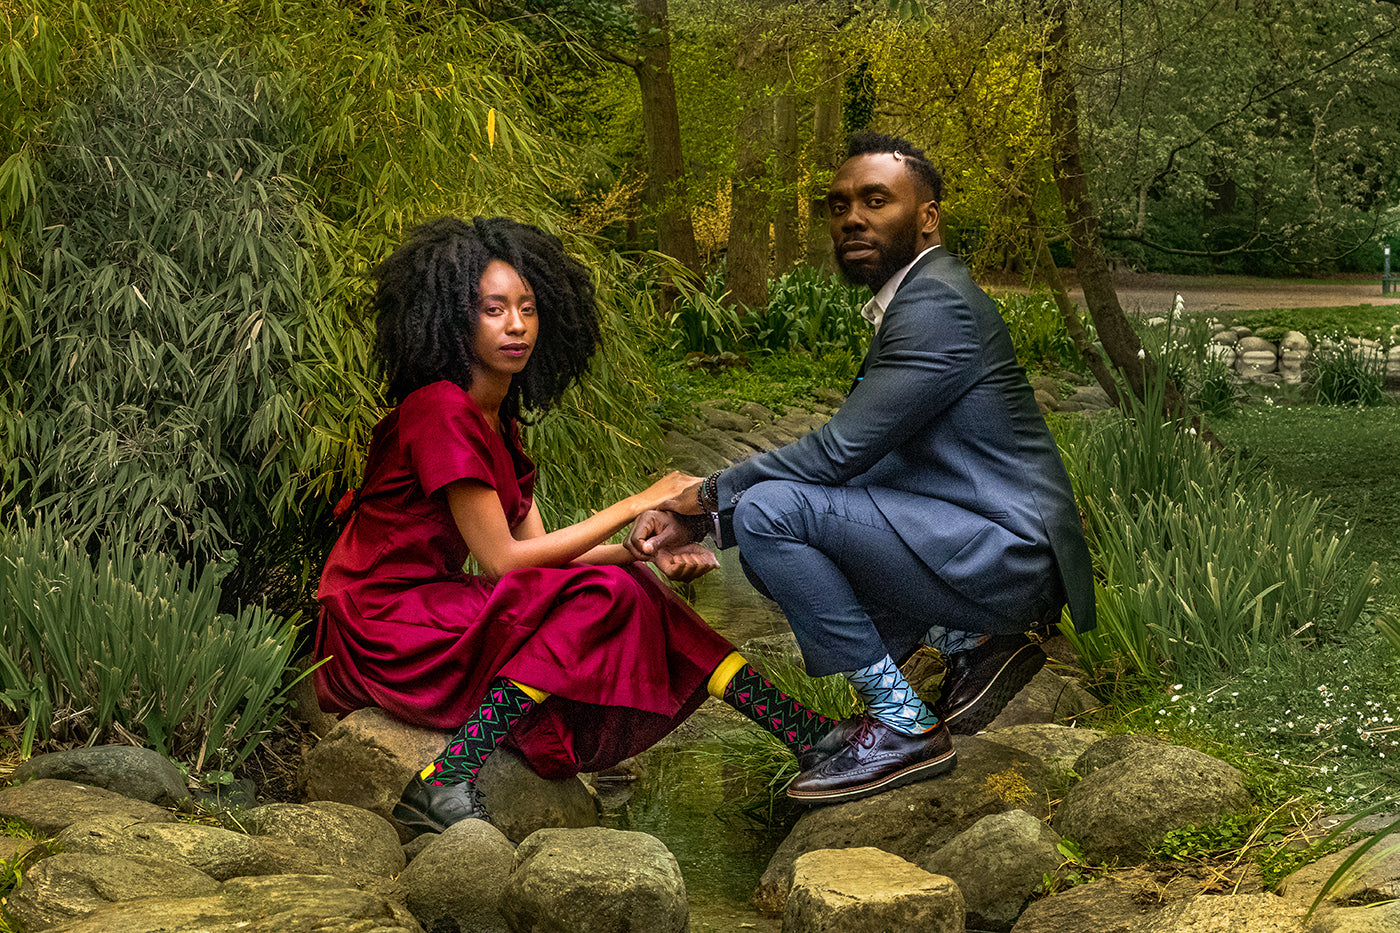 couple with black man and woman with suit, dress, colorful african bamboo dress socks sitting by water